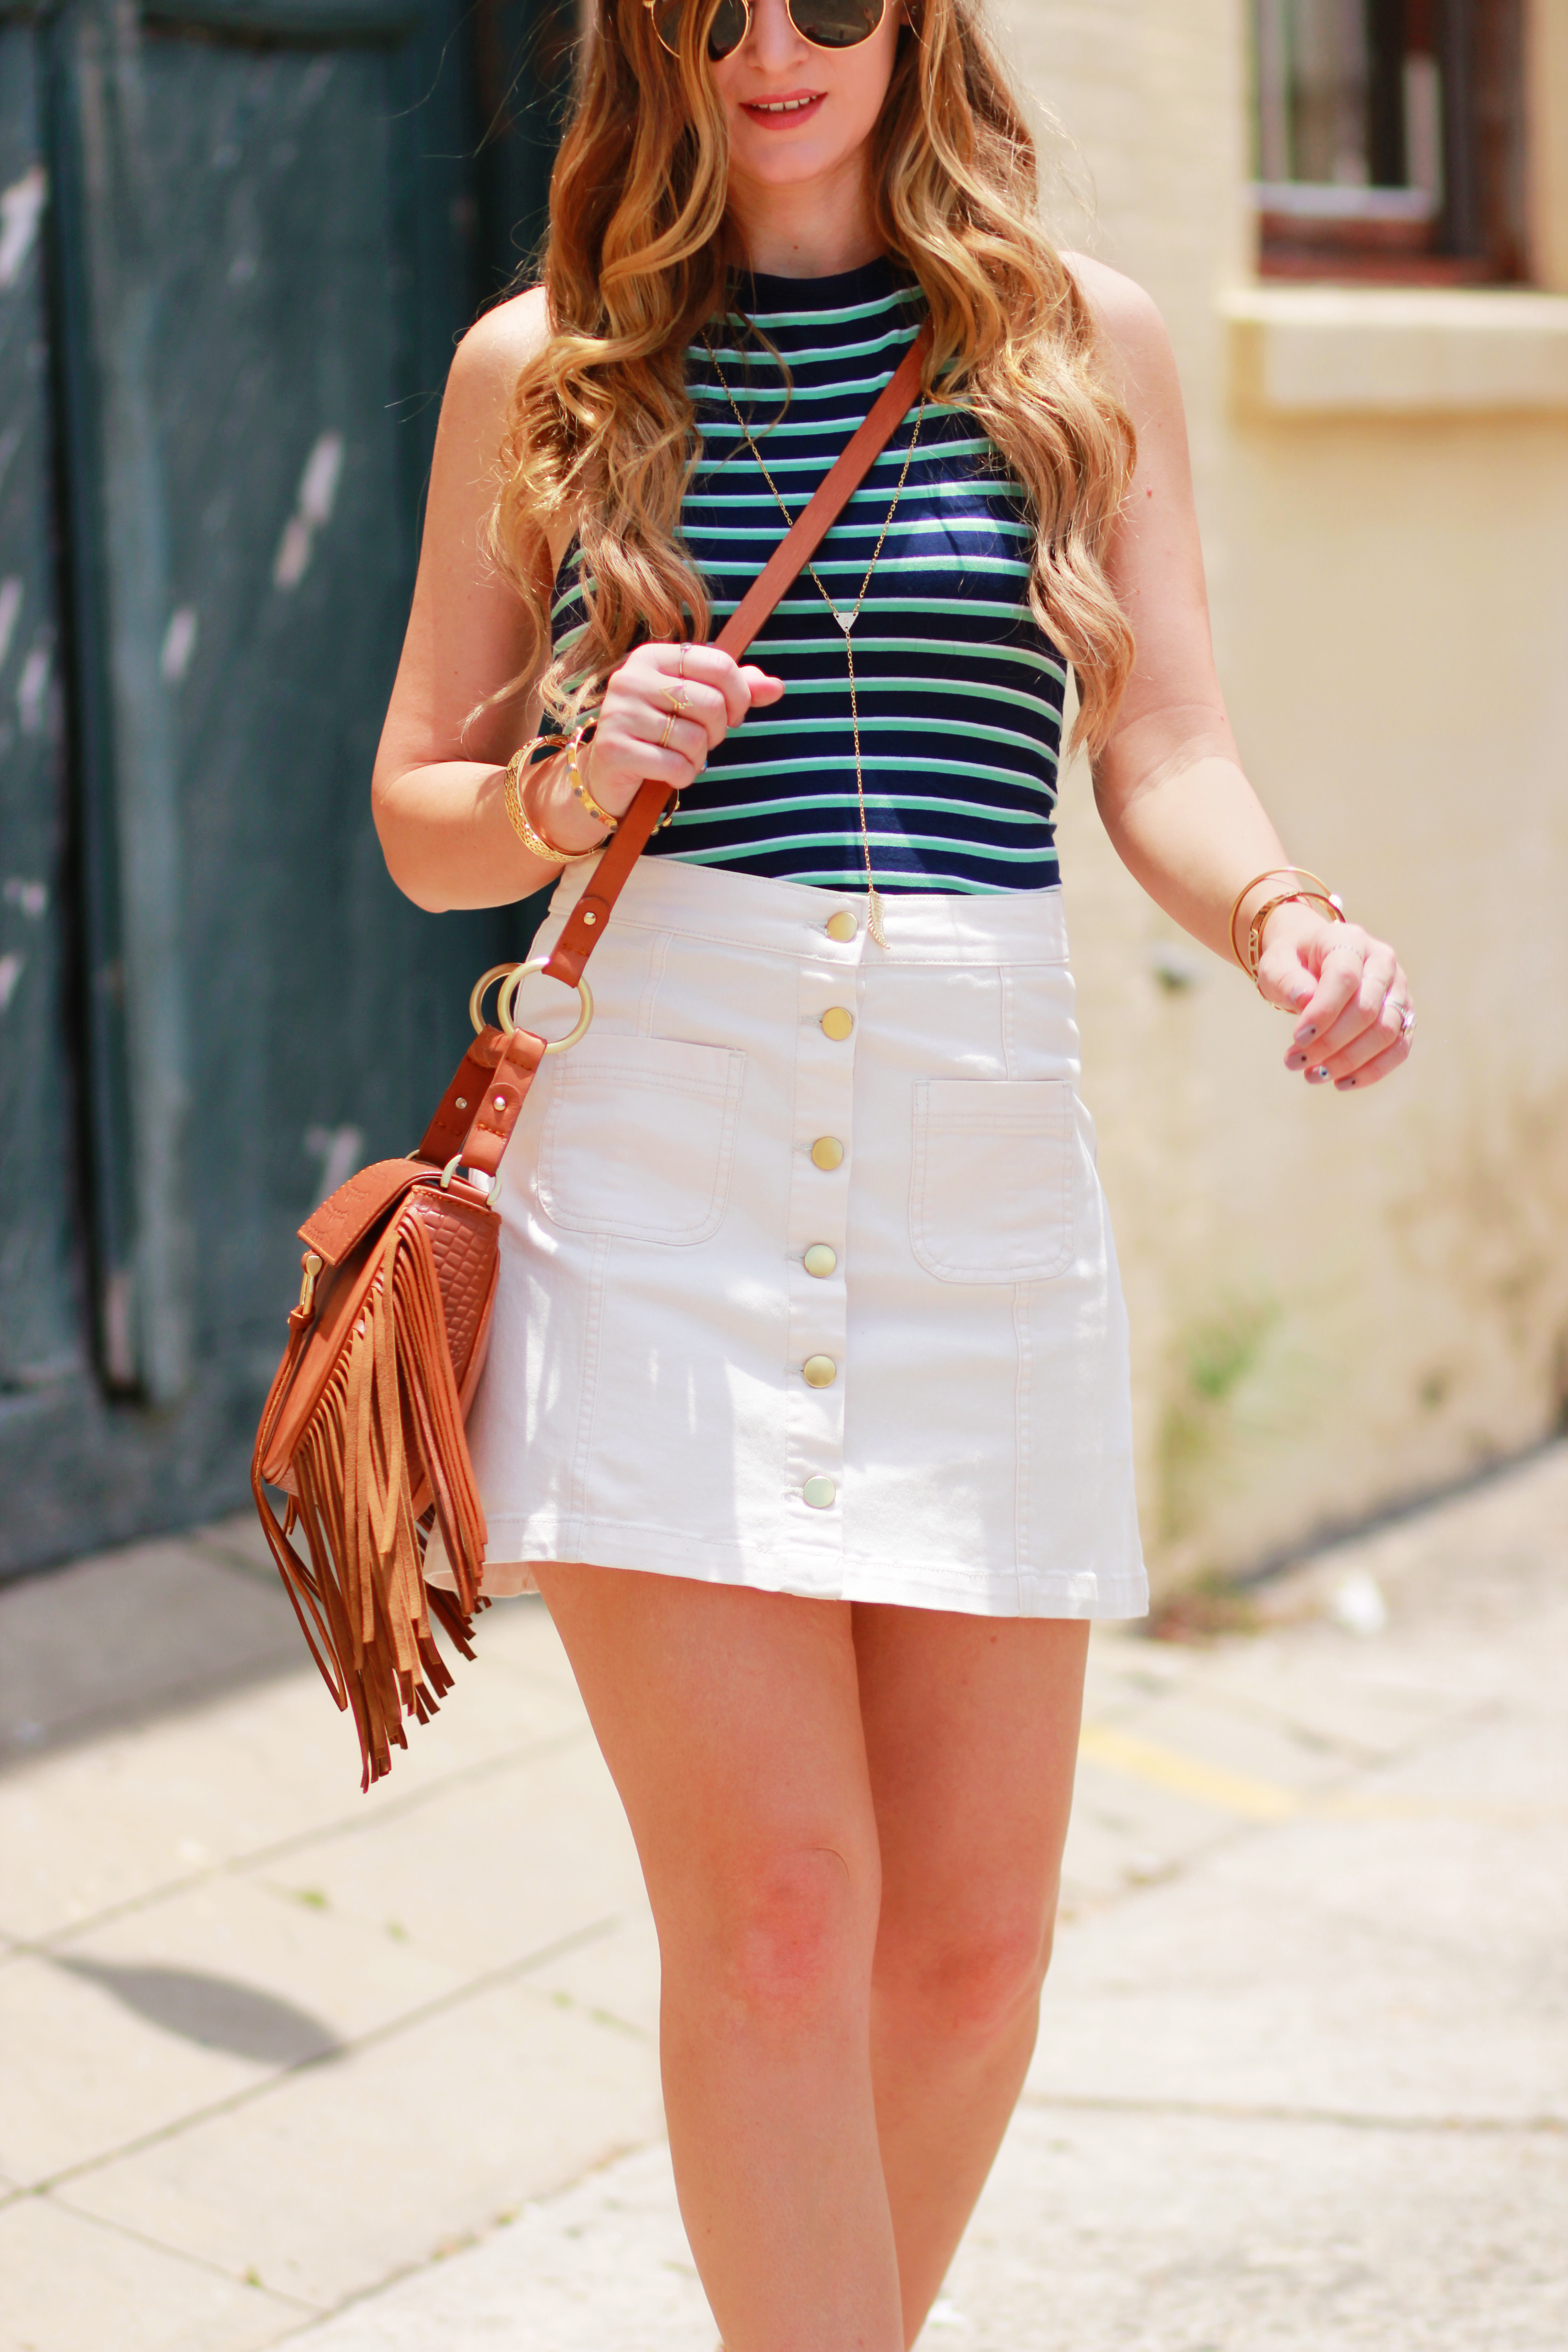 70 S Inspired Summer Outfit Upbeat Soles Florida